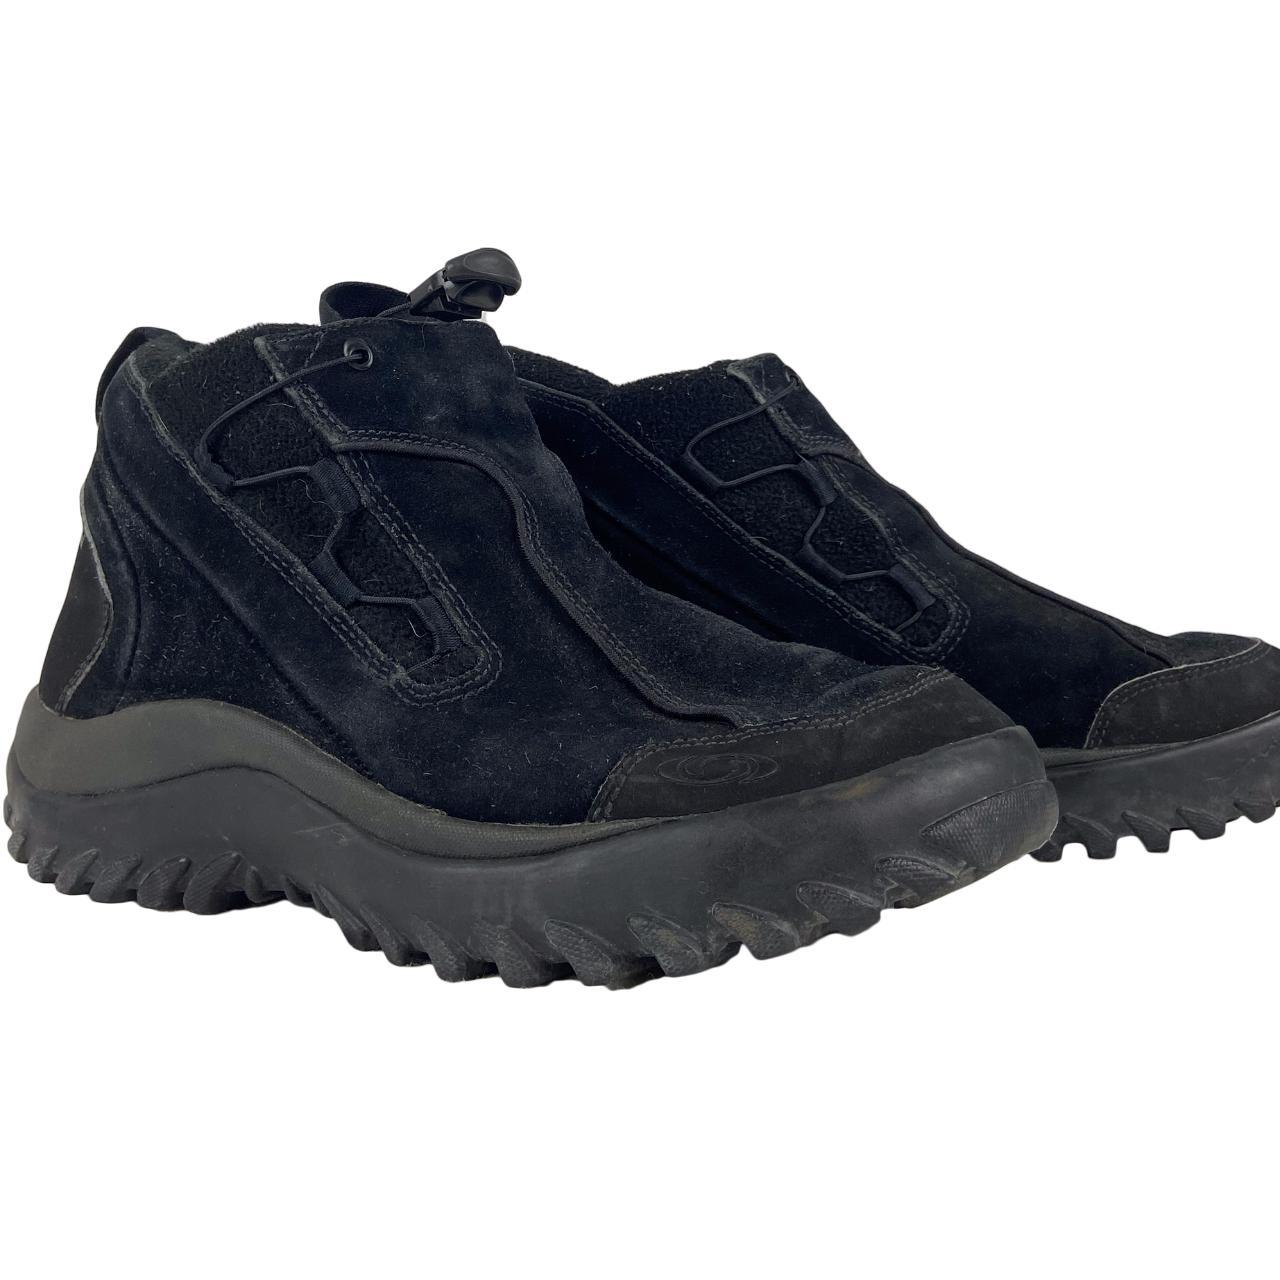 Product Image 1 - Salomon contagrip hiking boots (US8.5M/US10W)  All